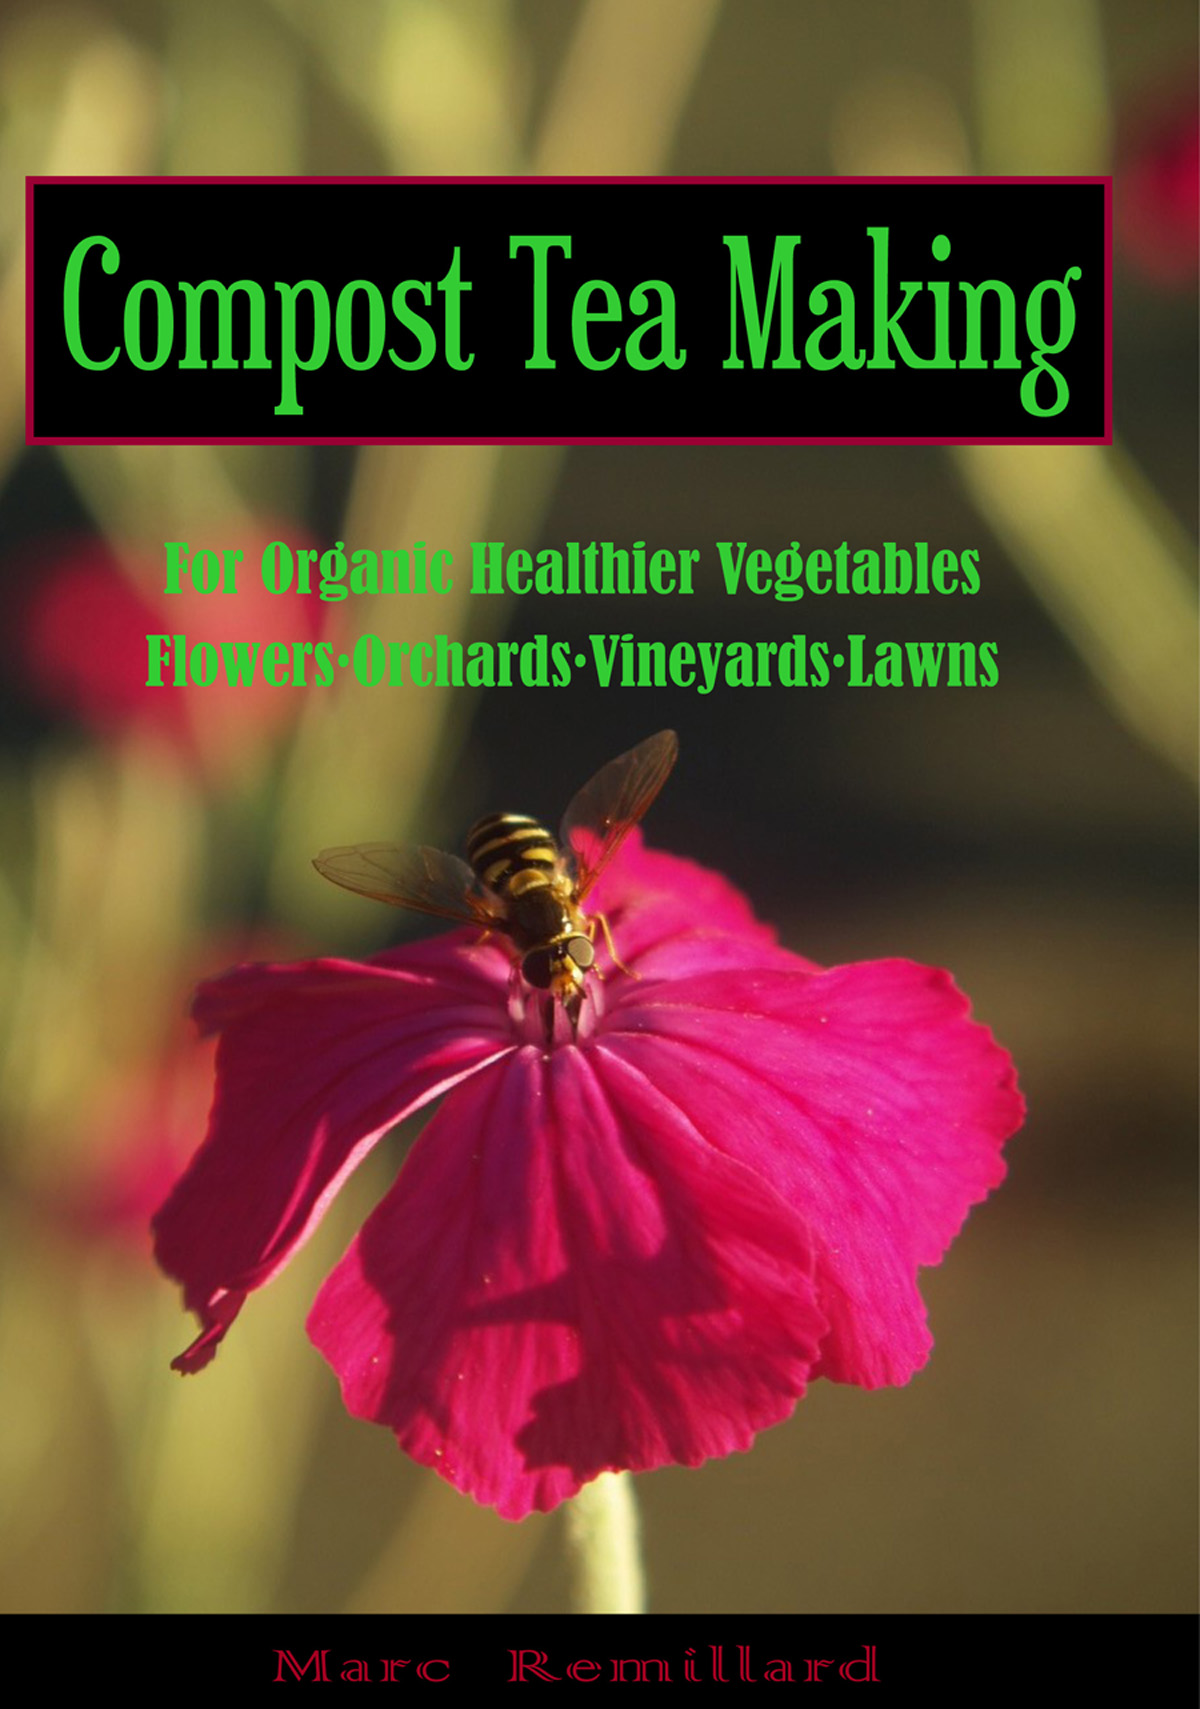 Compost Tea Making, compost tea, composting, how to compost